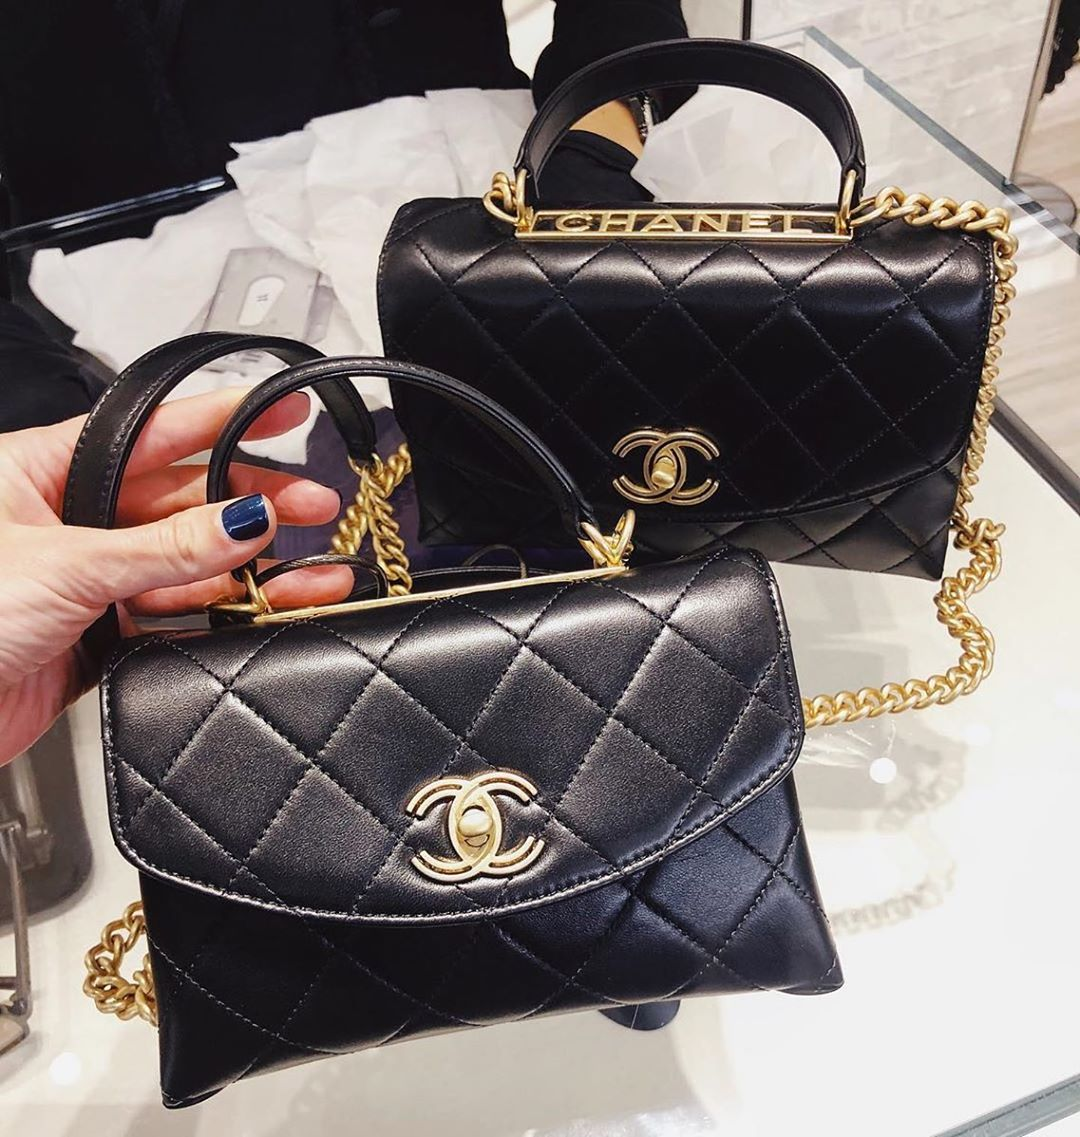 Chanel Gold Top Handle Bag